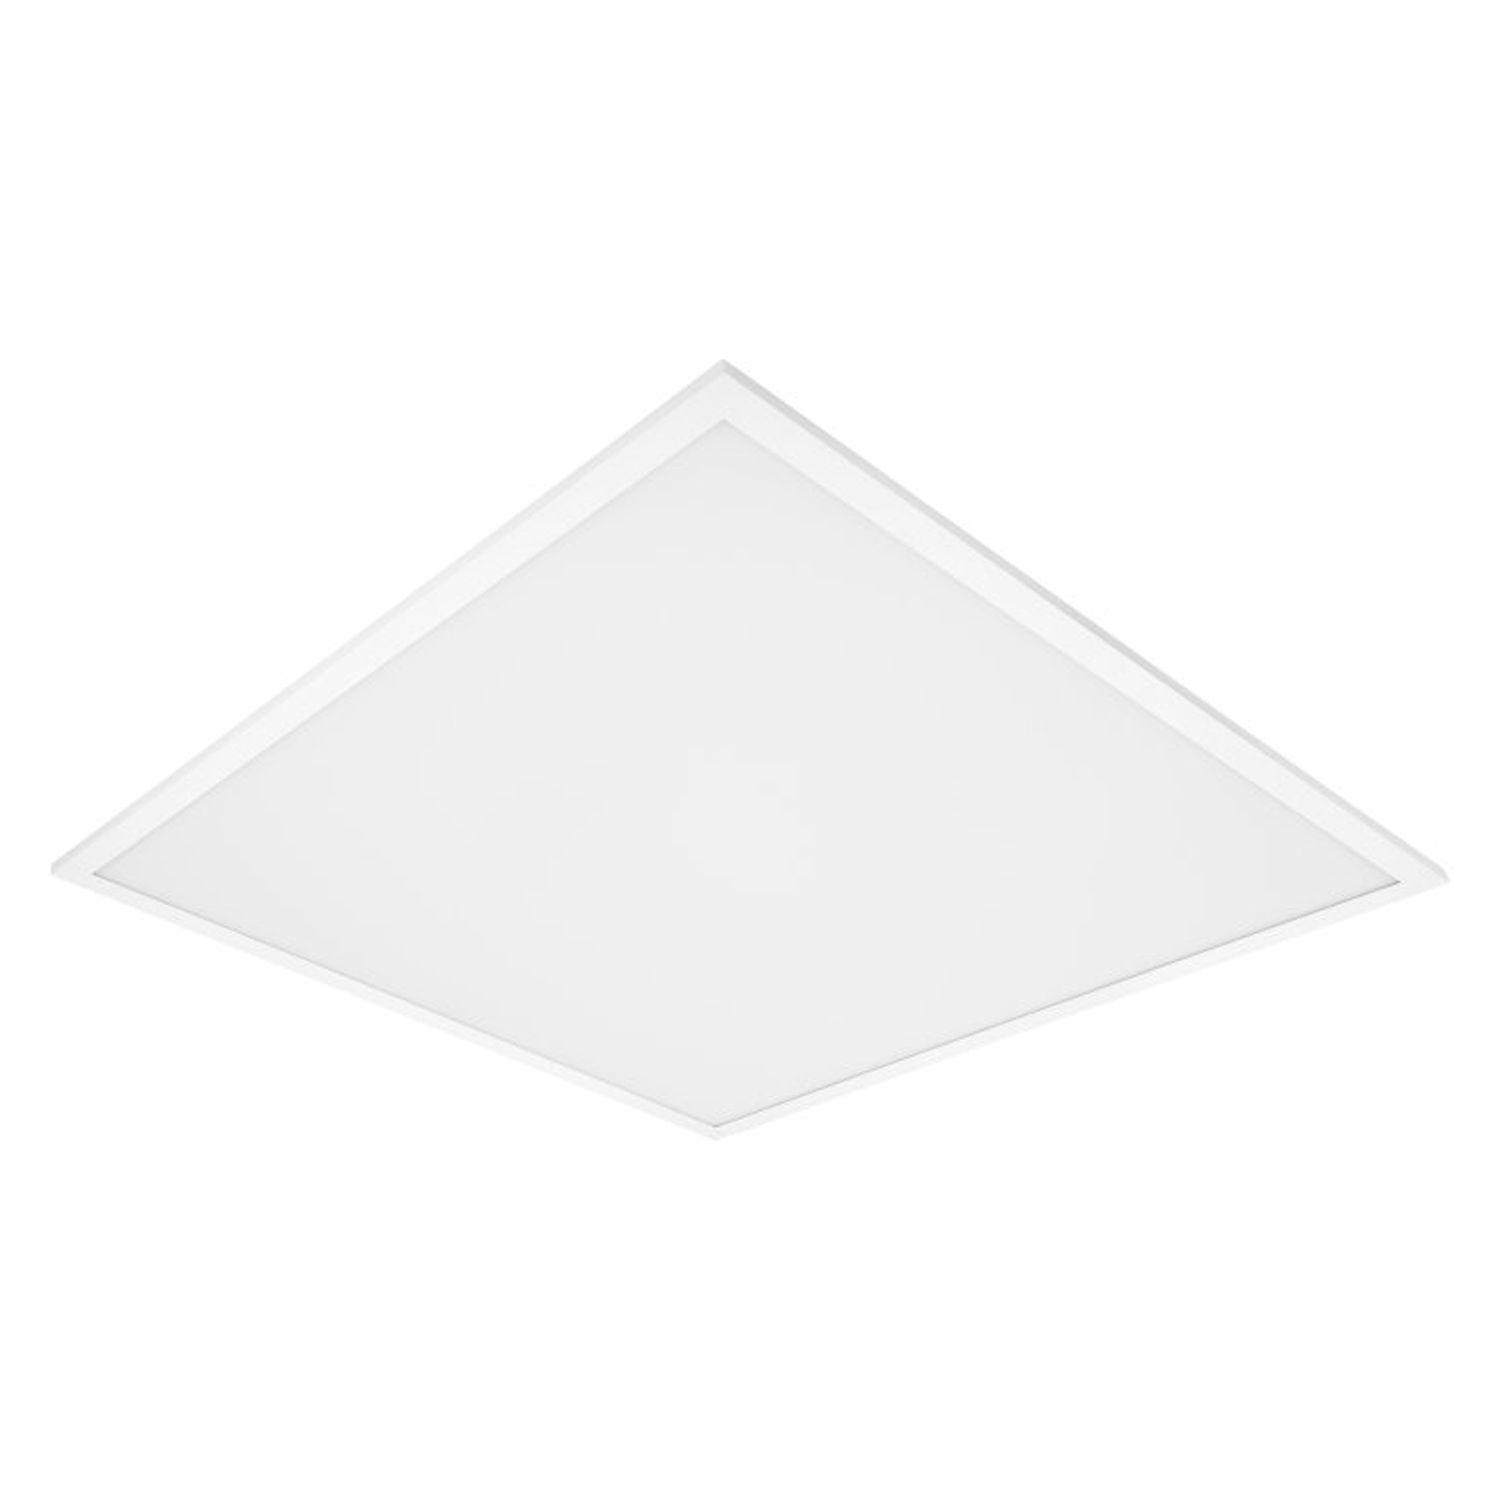 Ledvance LED Panel Performance 60x60cm 4000K 30W UGR<19 | Dali Dimmable